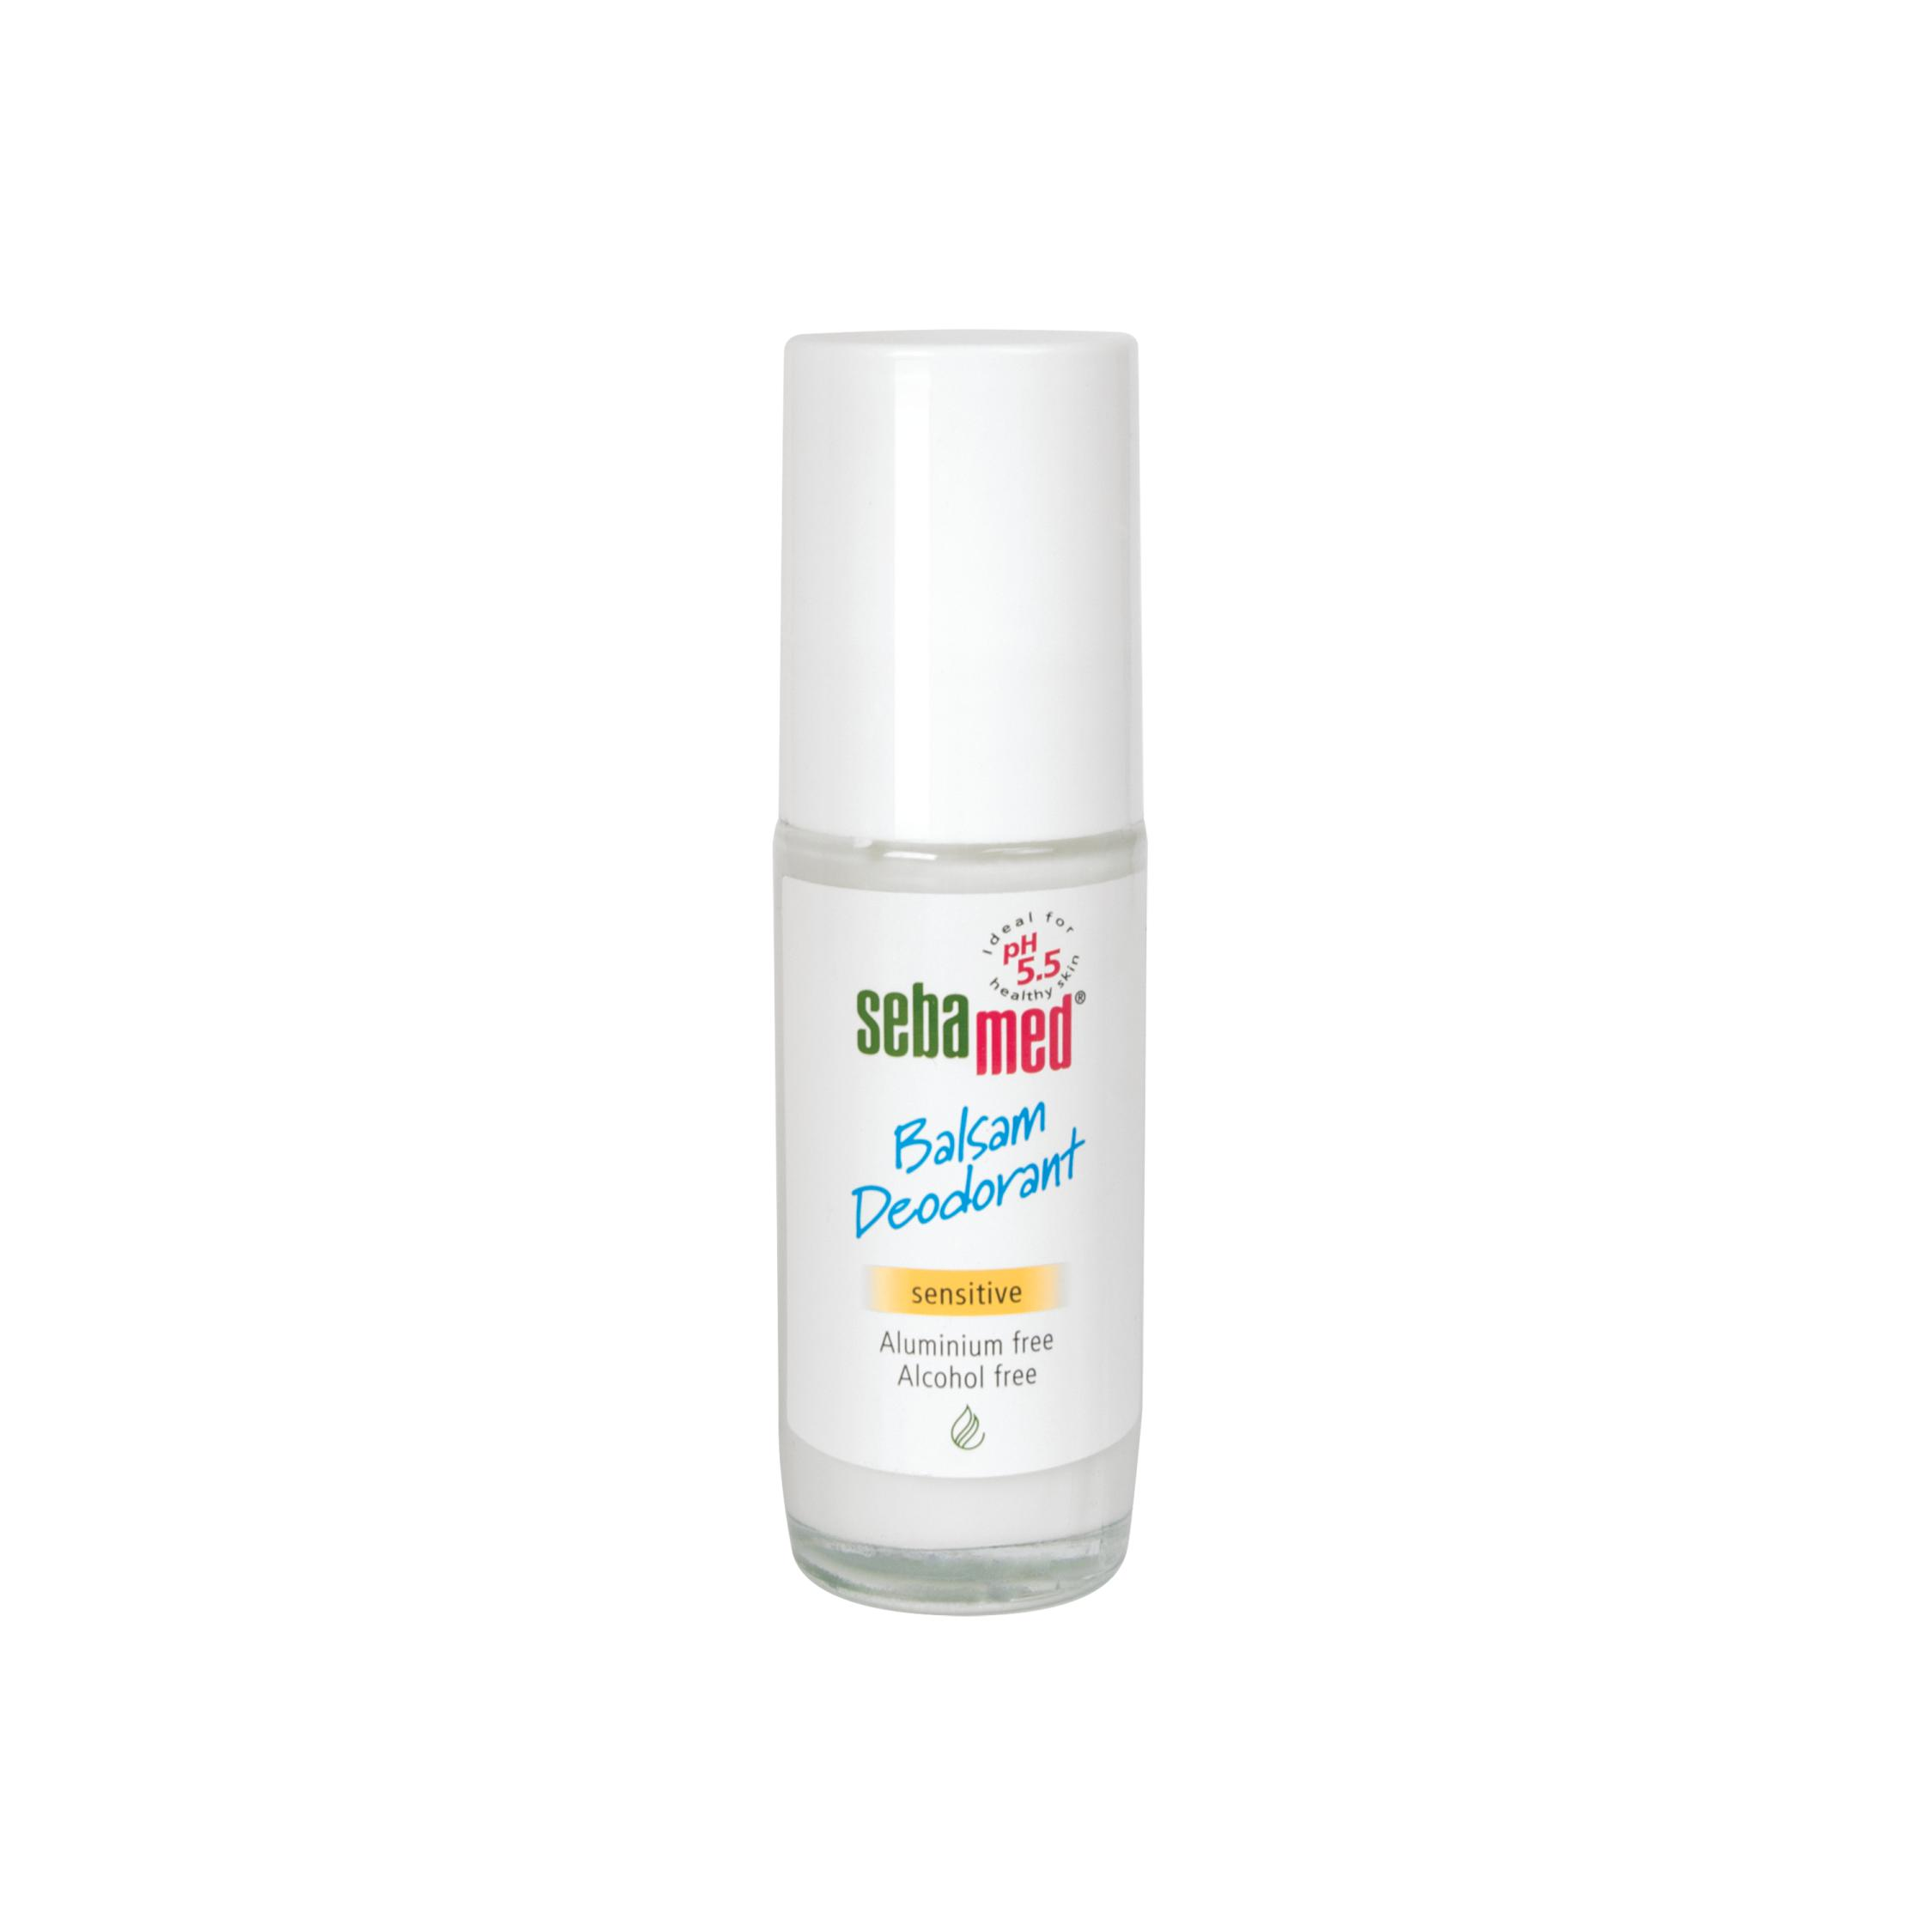 Sebamed Sensitive Balsam 50ml roll on